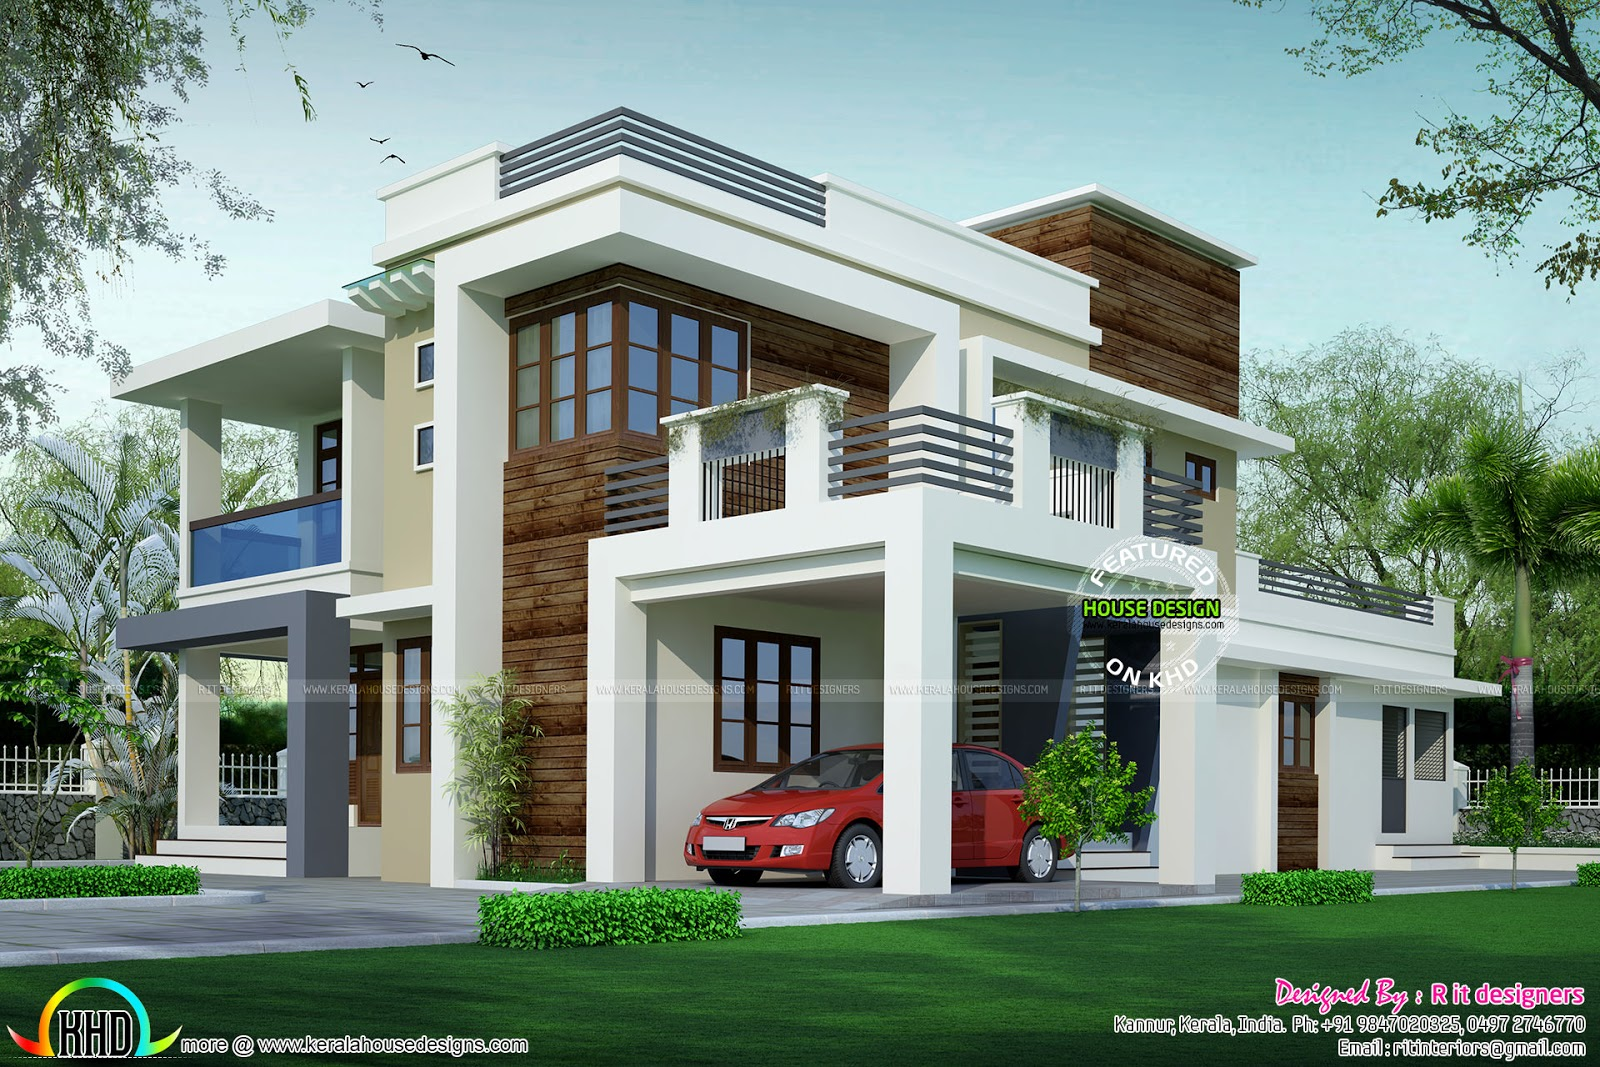 House design contemporary model kerala home design and for Kerala home designs contemporary